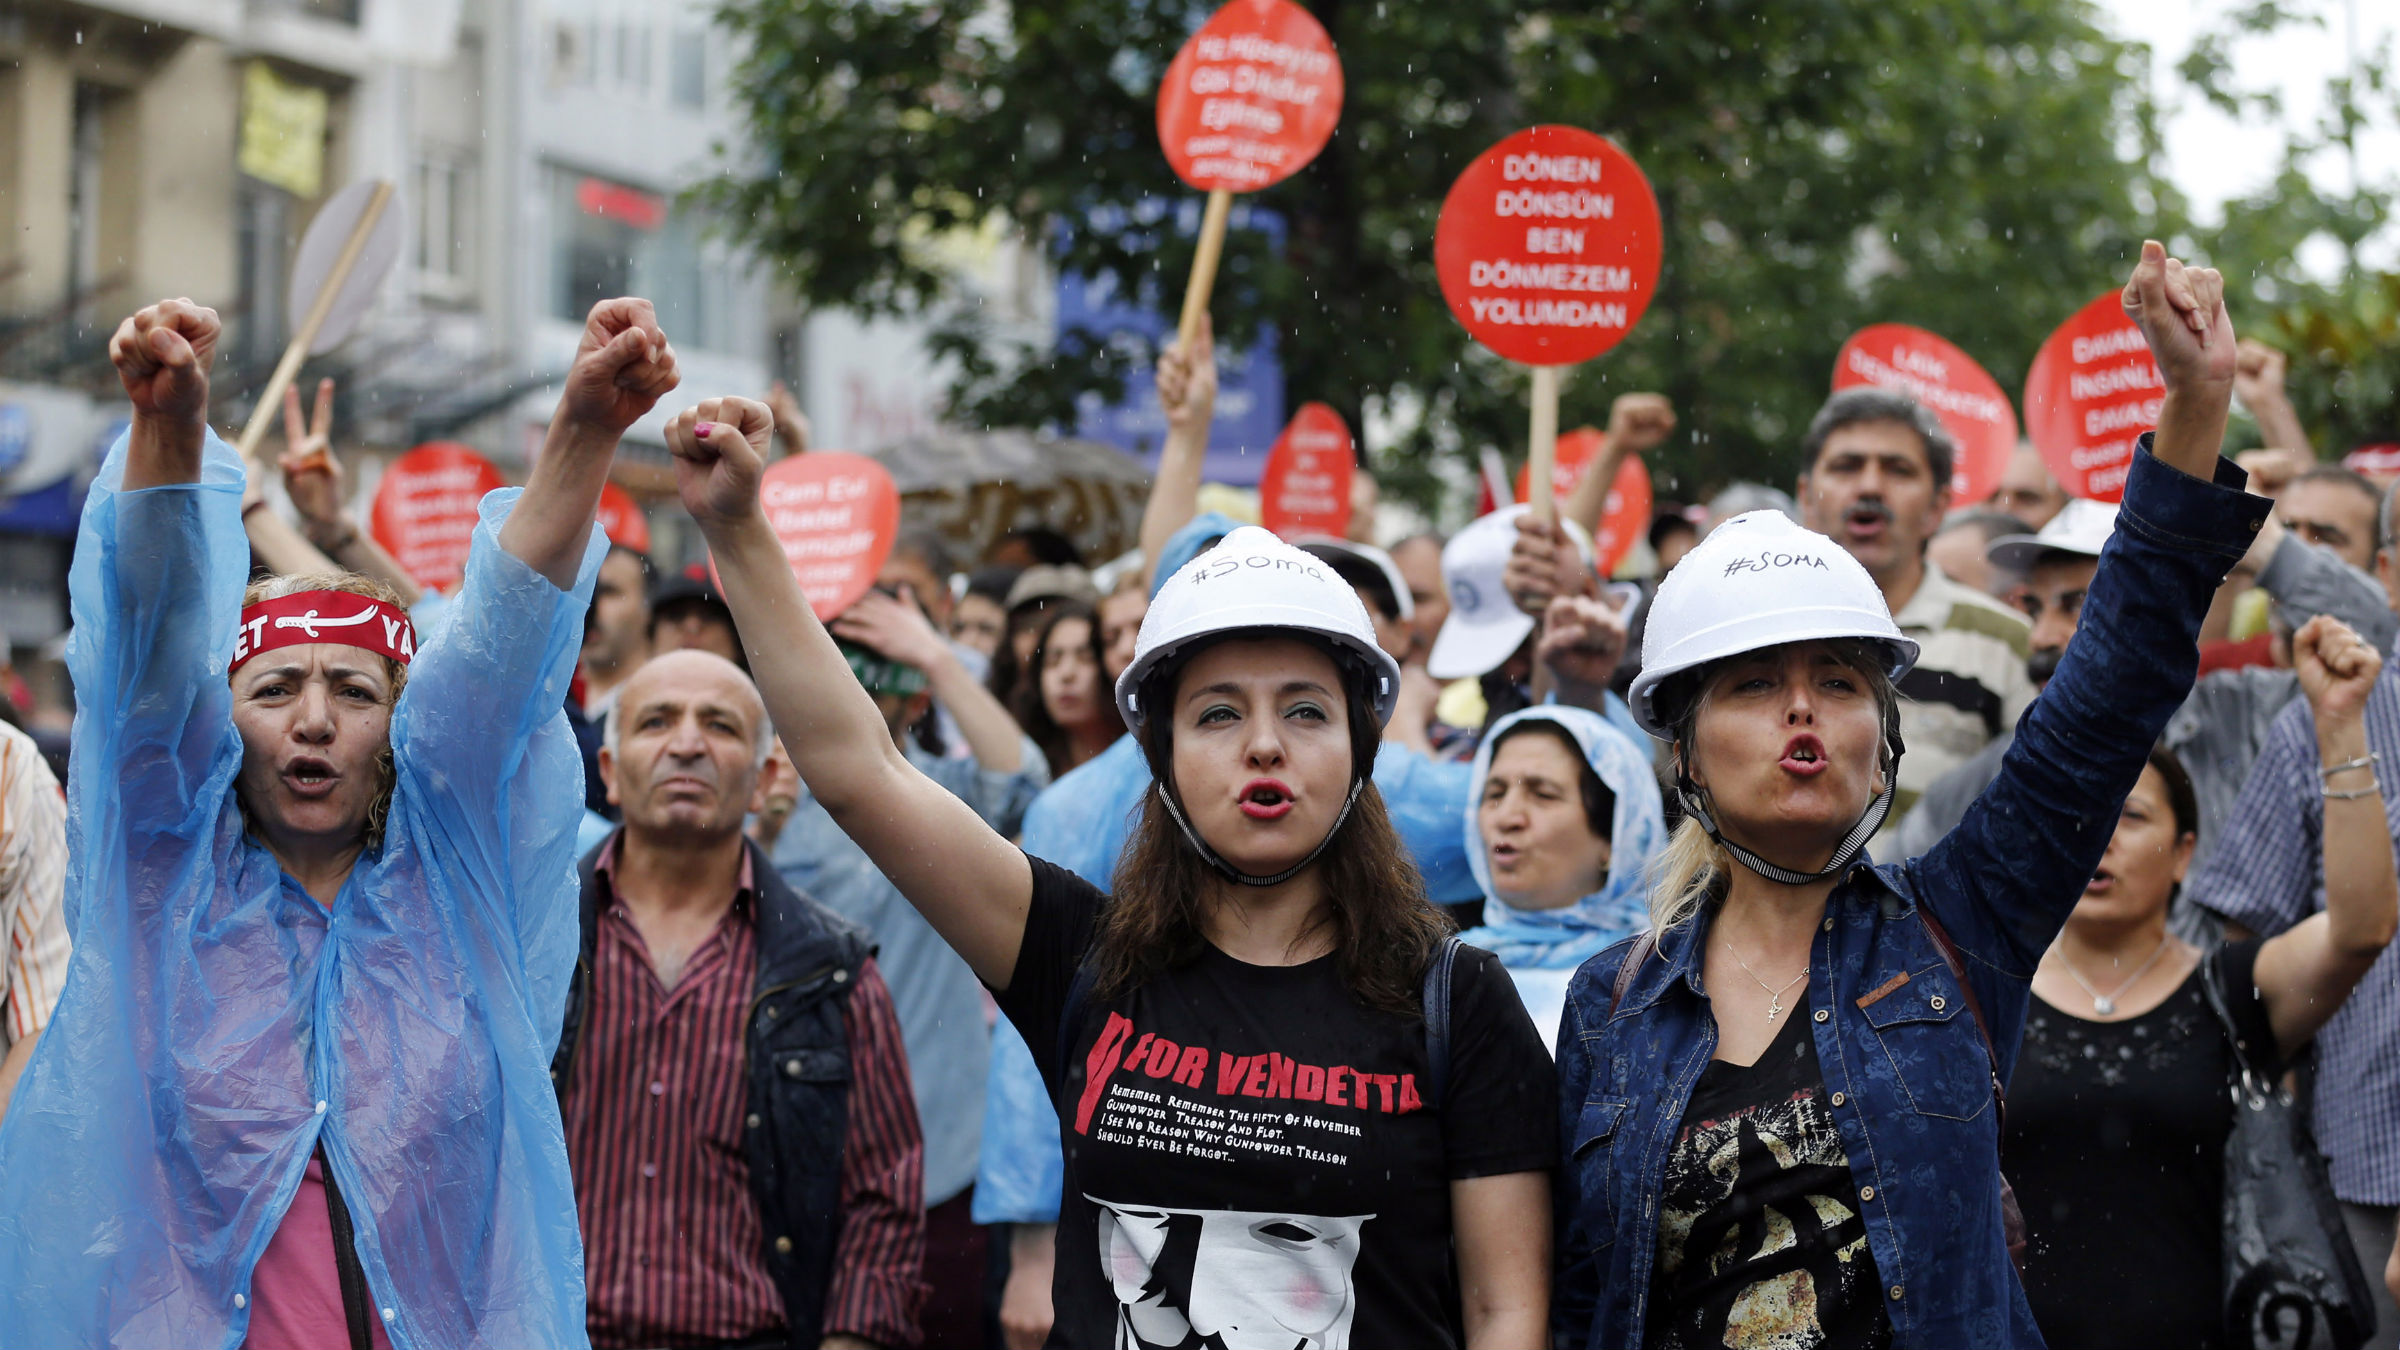 Alevi demonstrators shout anti-goverment slogans during a protest against the latest violence in Okmeydani, a working-class district in the center of the city, in Istanbul May 25, 2014. Two people died last week after clashes between Turkish police and protesters in Okmeydani, a working-class district of Istanbul, stirring fears of further unrest as the anniversary of last year's anti-government demonstrations approaches. Okmeydani is home to a community of Alevis, a religious minority in mainly Sunni Muslim Turkey who espouse a liberal version of Islam and have often been at odds with Prime Minister Tayyip Erdogan's socially conservative, Islamist-rooted government.